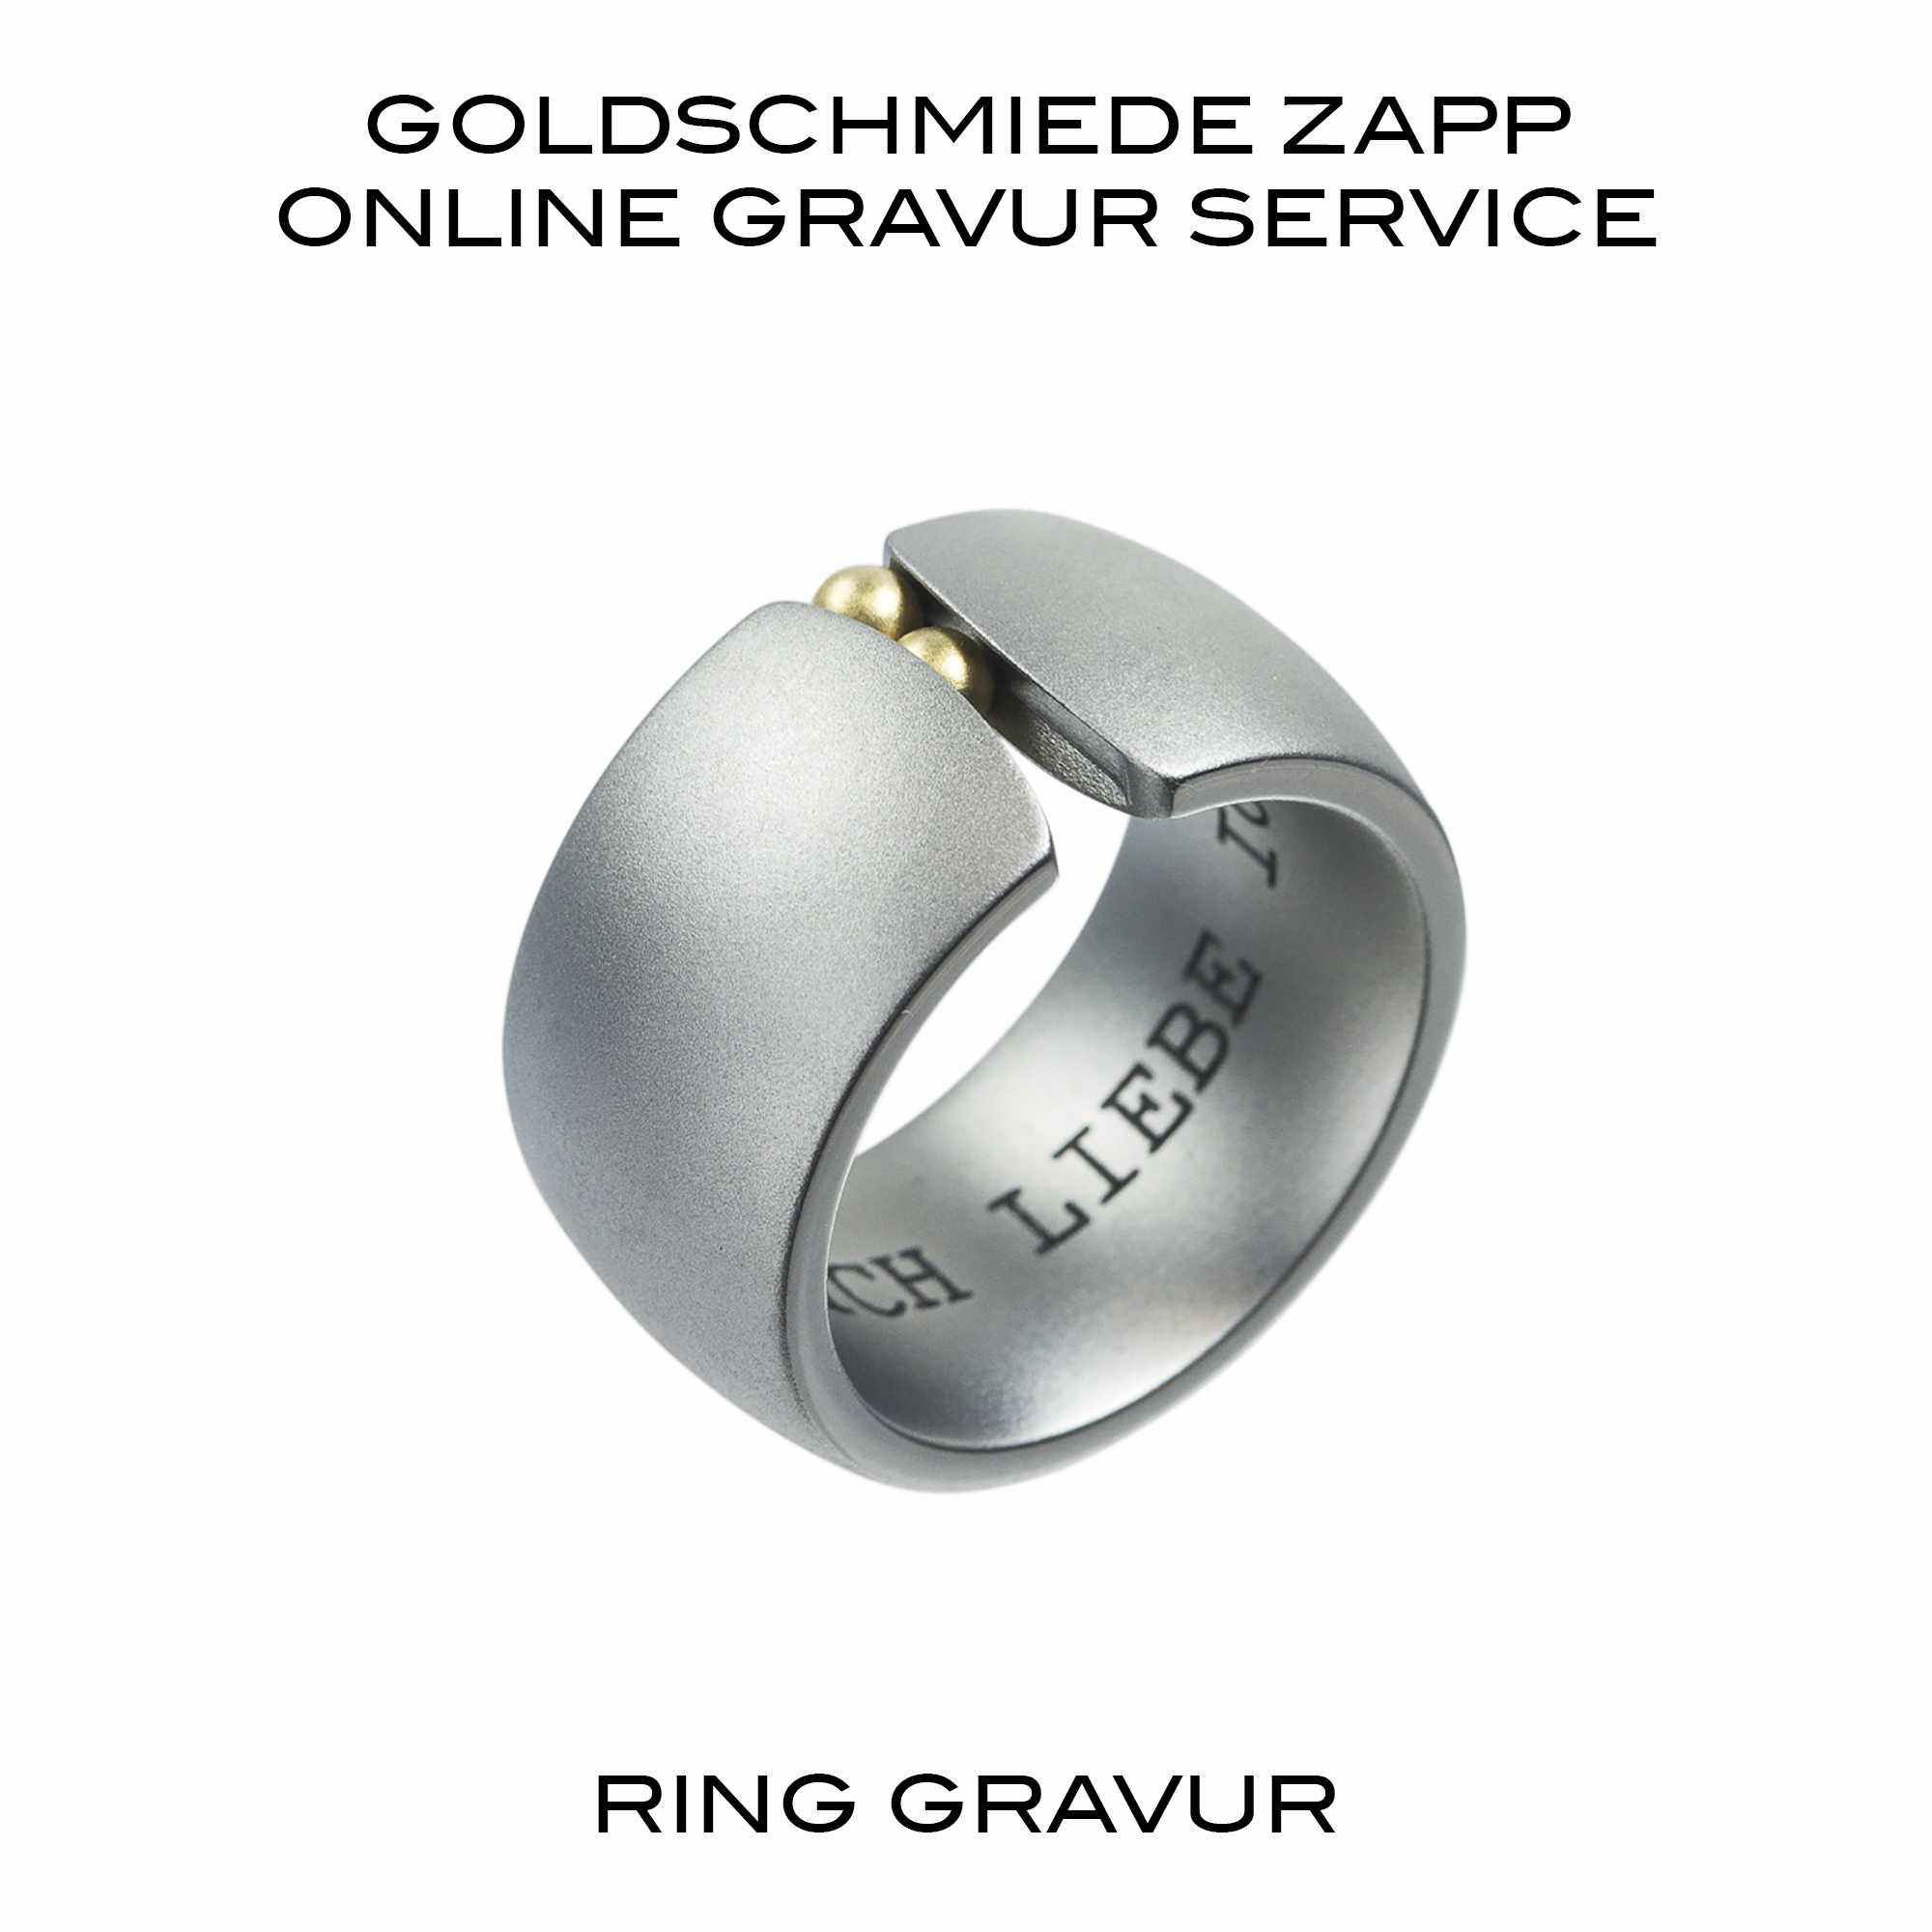 ring innen mit laser gravieren lassen goldschmiede juwelier zapp seit 1907. Black Bedroom Furniture Sets. Home Design Ideas